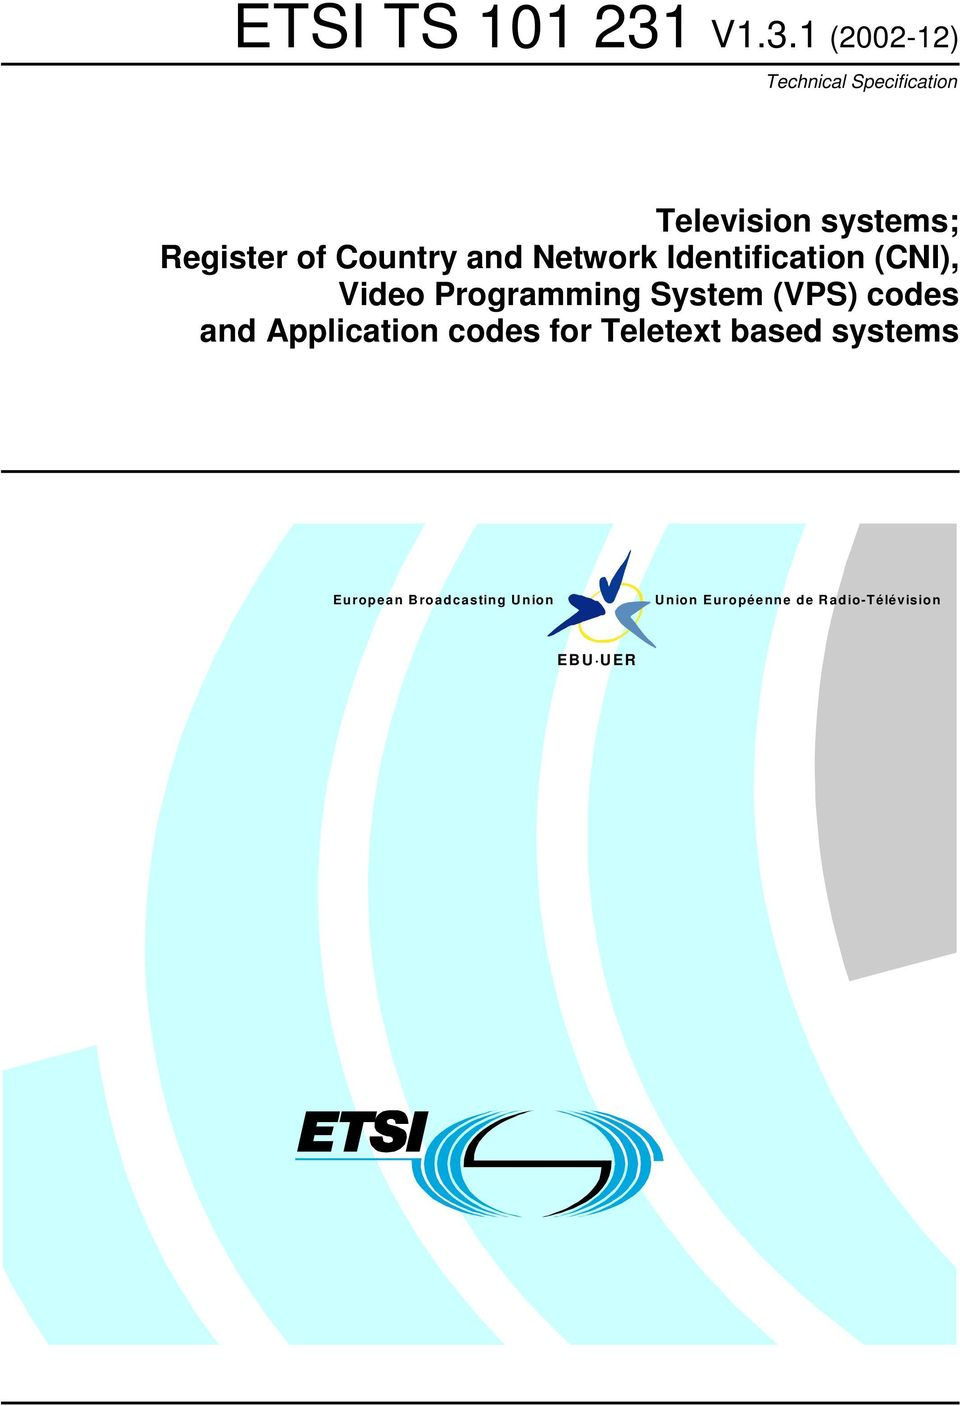 of Country and Network Identification (CNI), Video Programming System